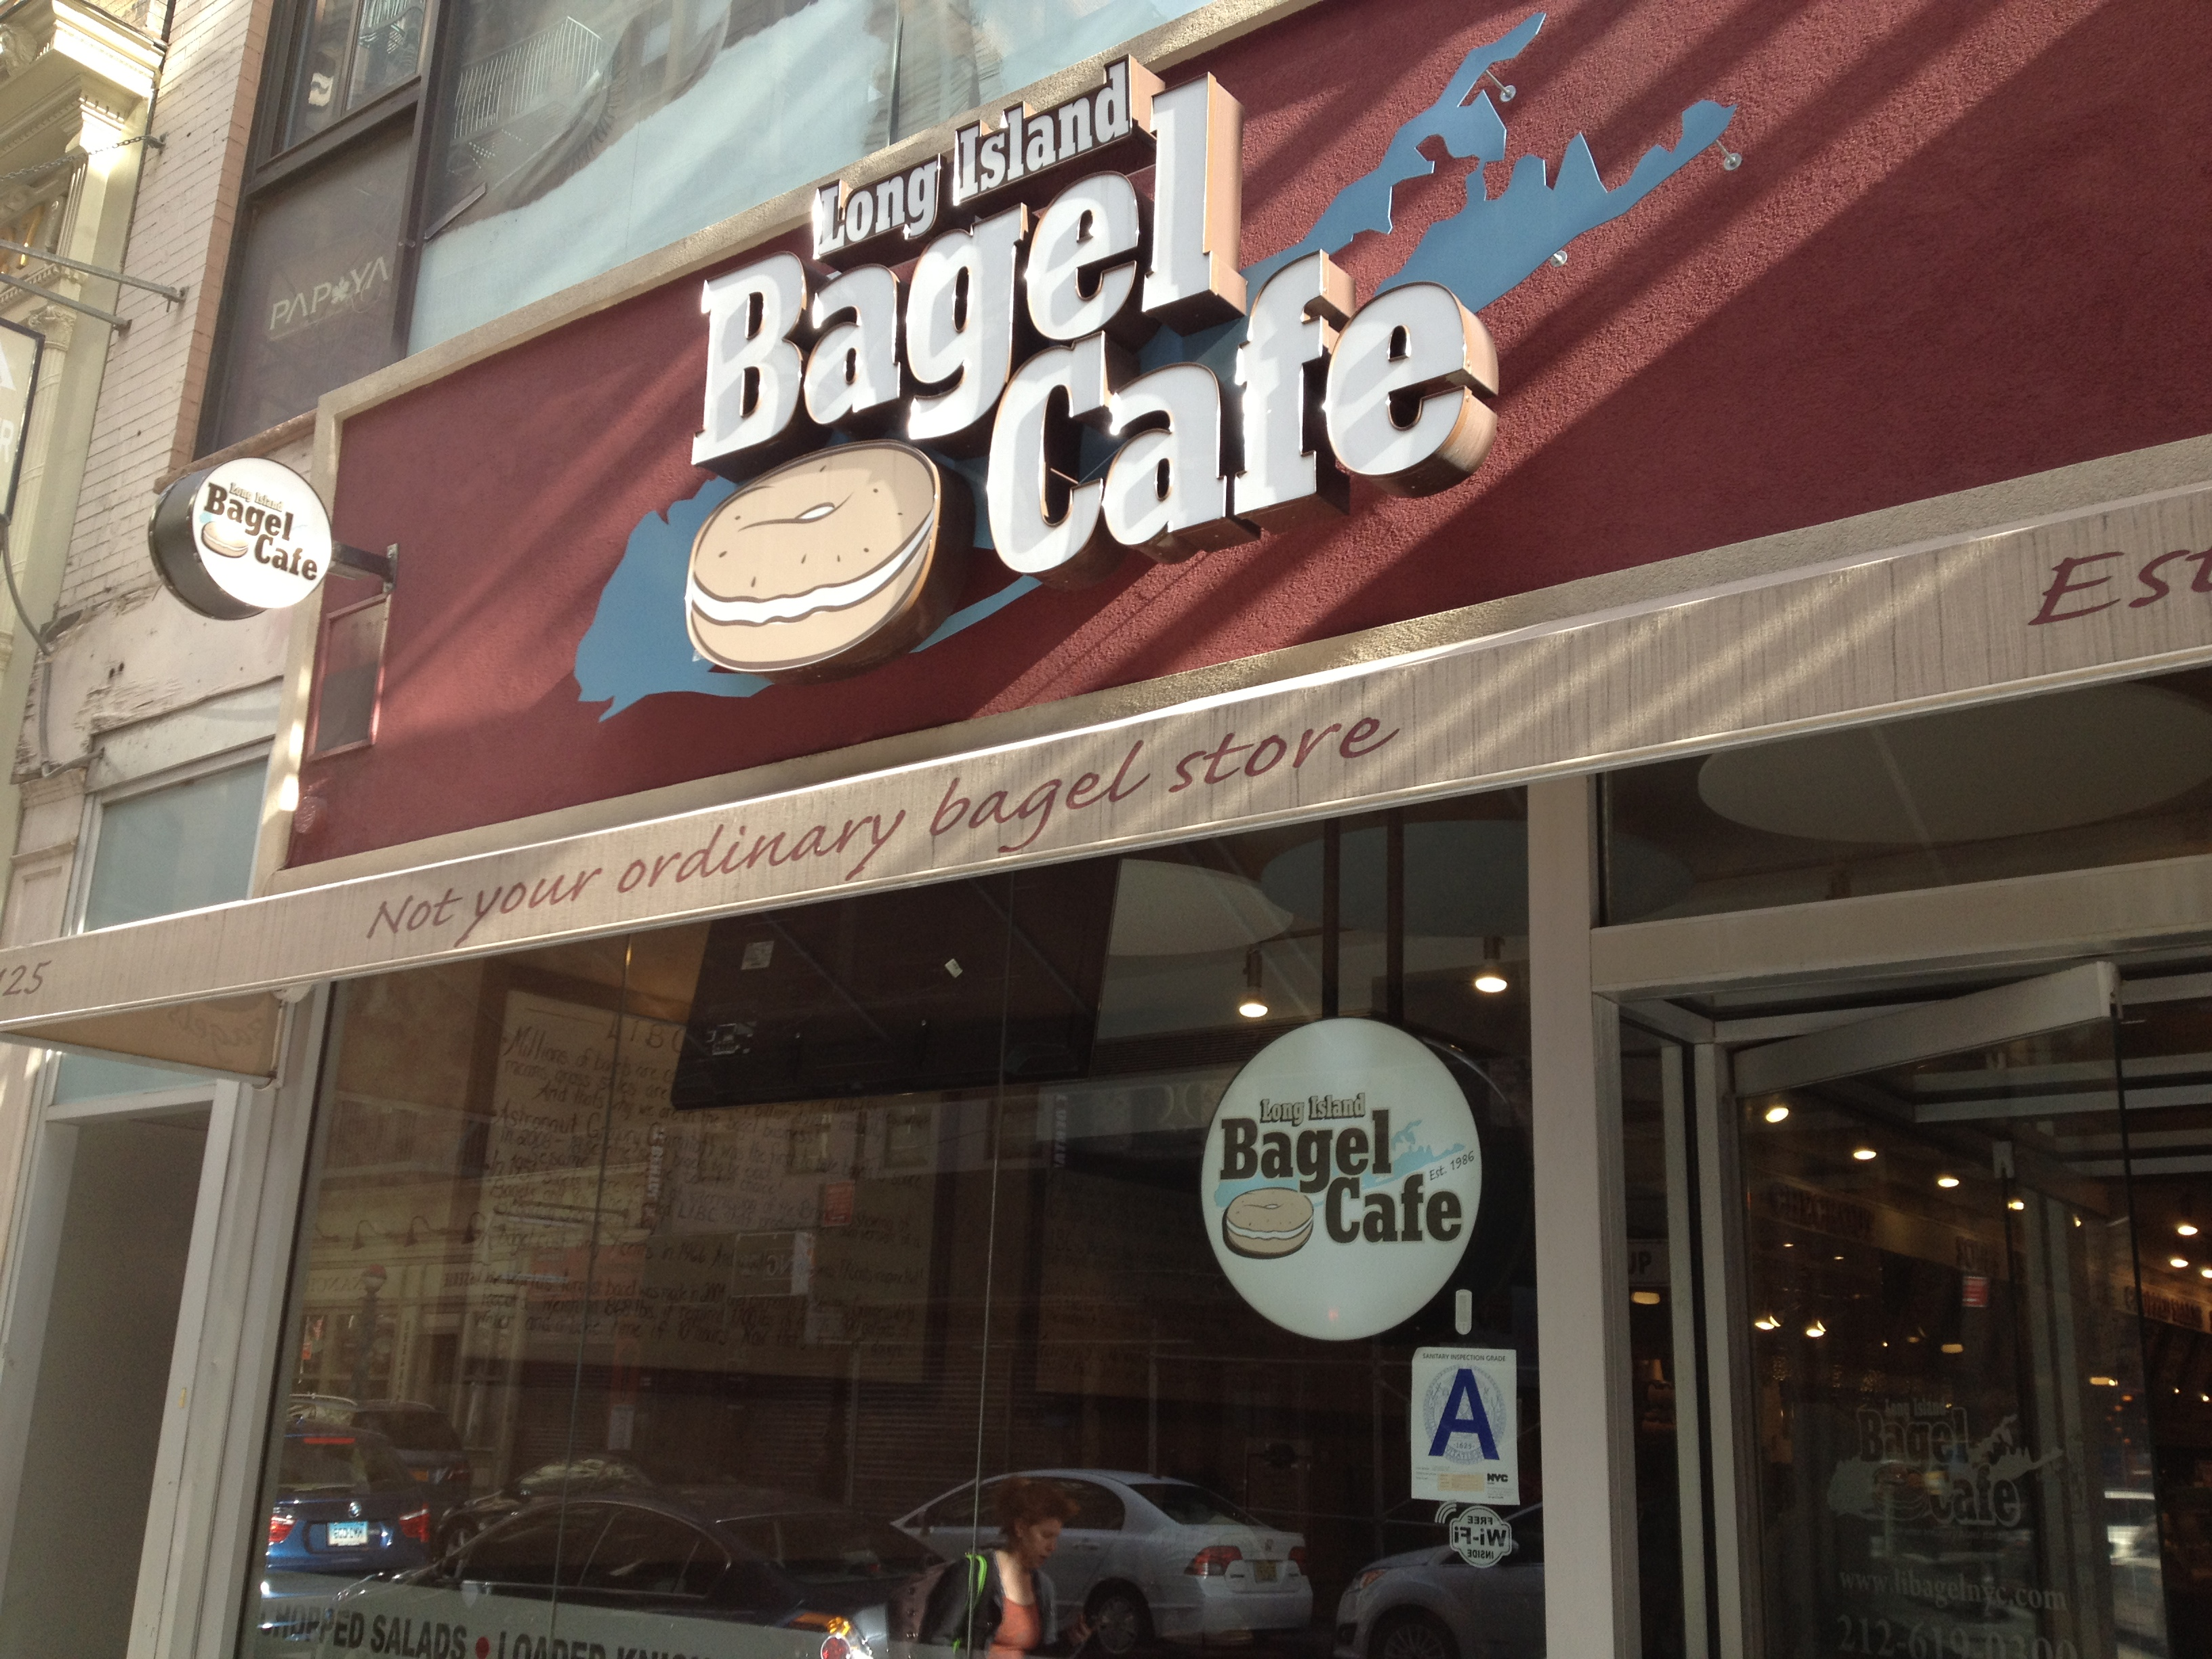 Long Island Bagel Dress Code